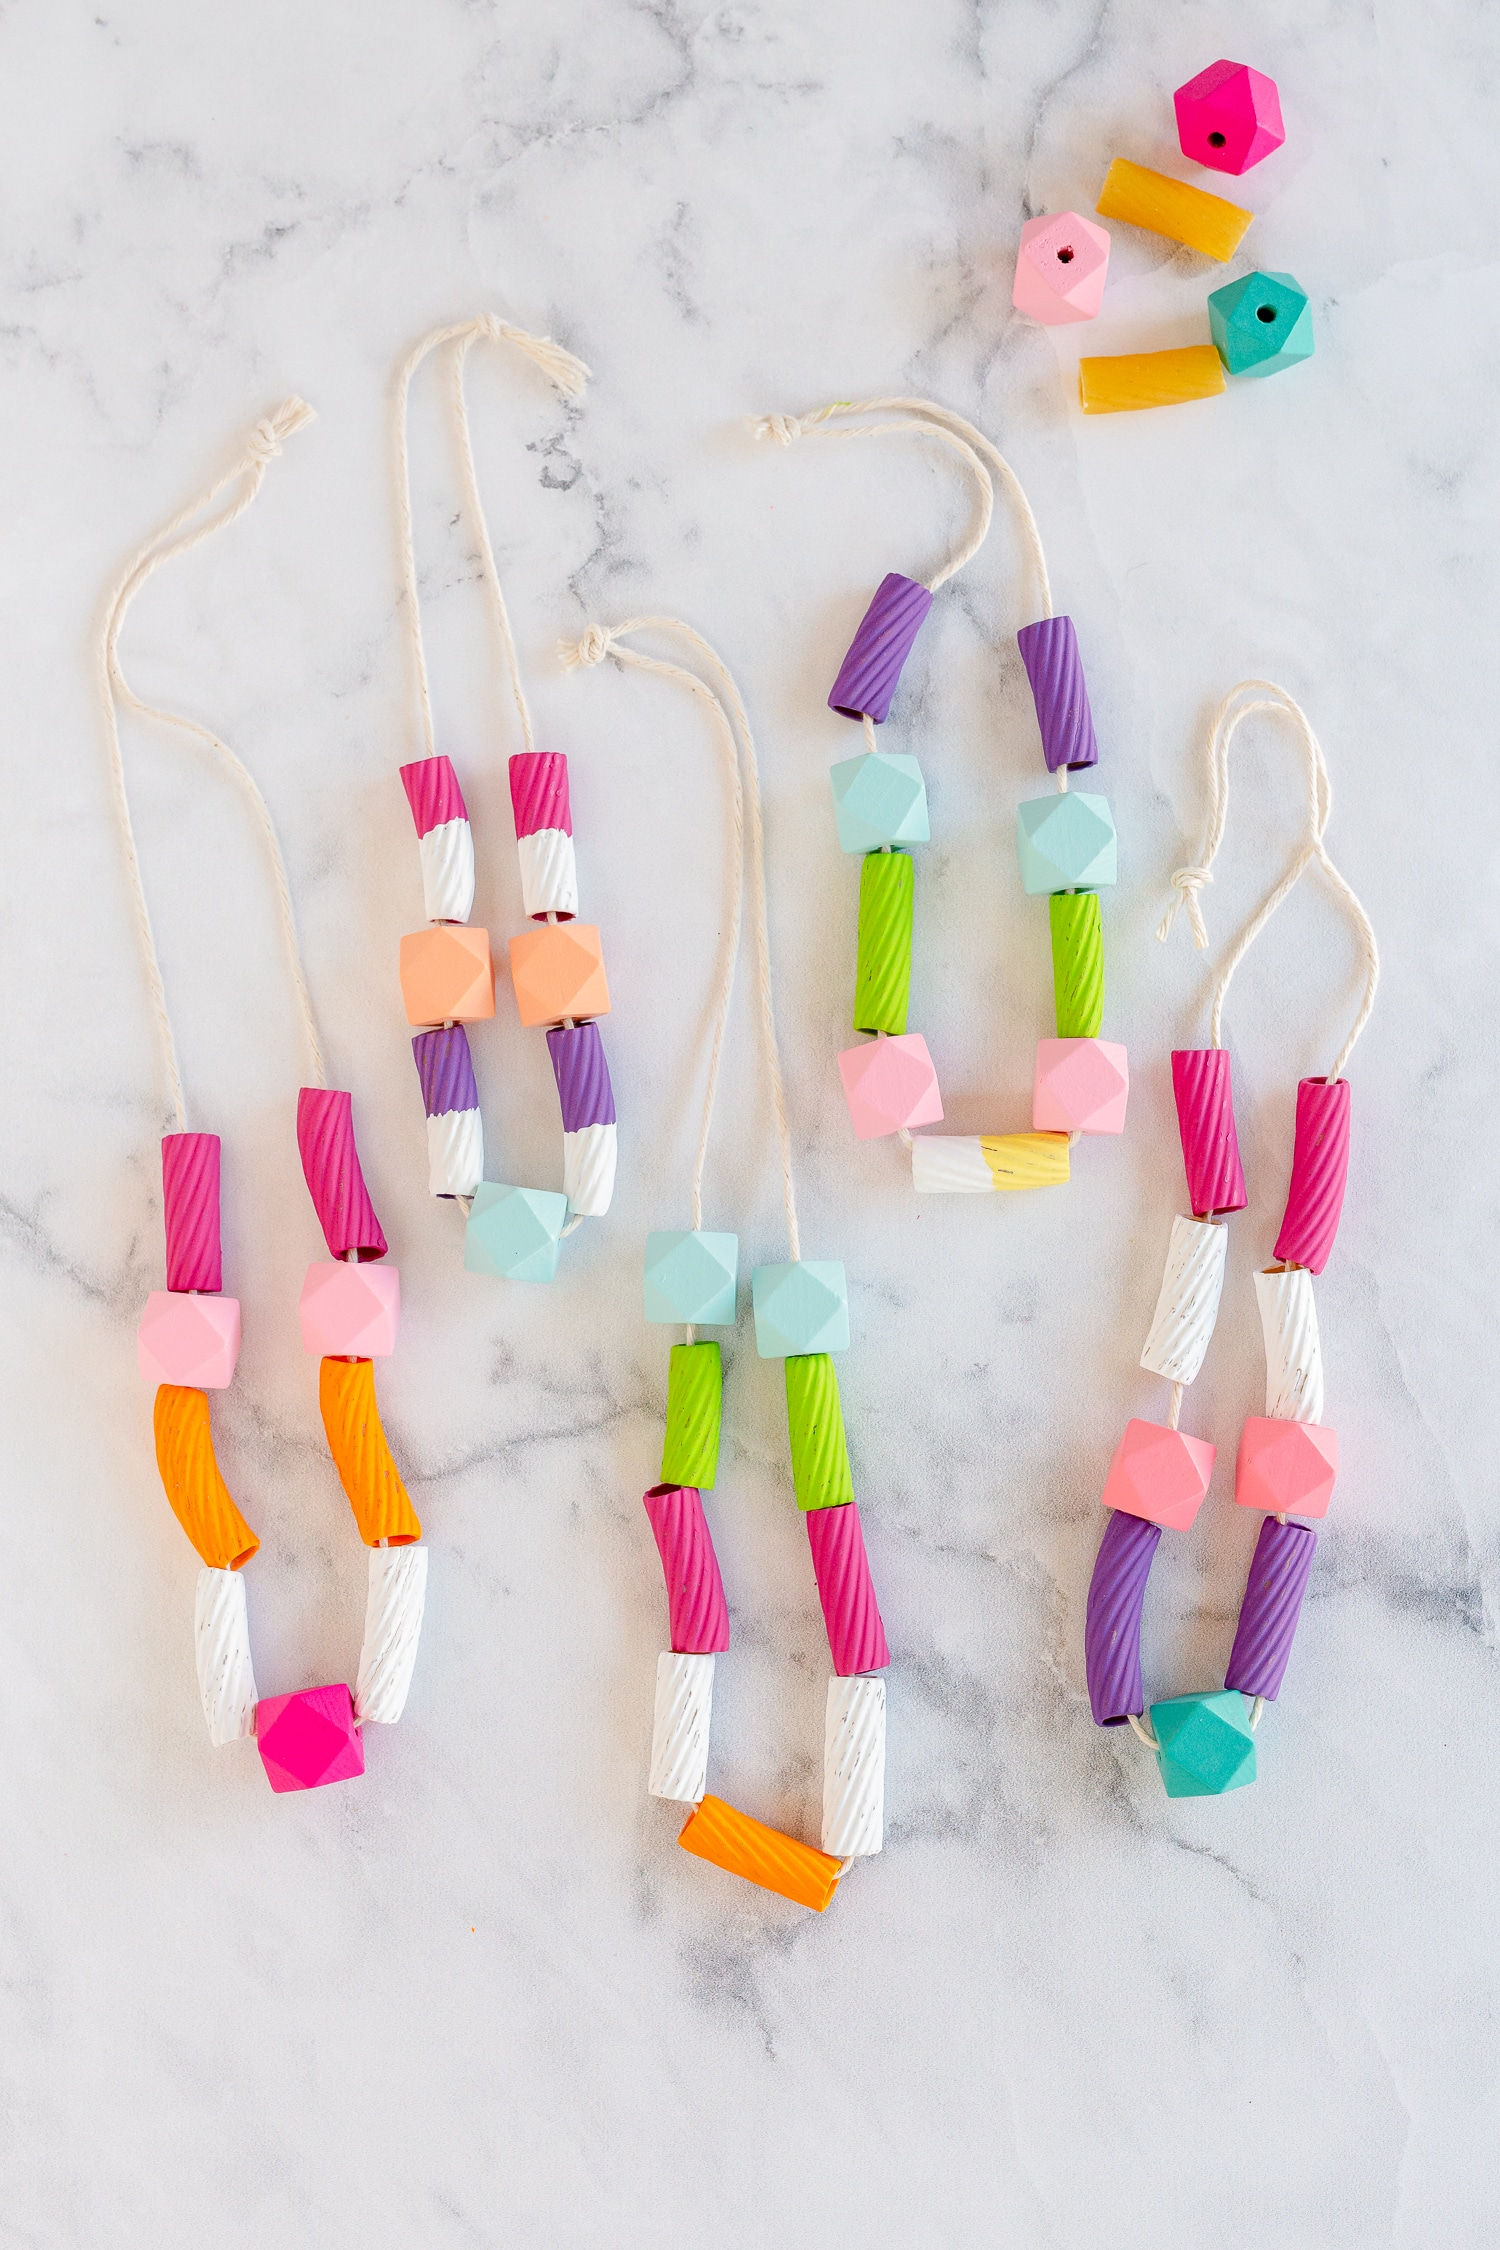 A mixture of colorful wooden beads and pasta makes these DIY Pasta Necklaces such a fun and simple craft the kids will love to make and wear!